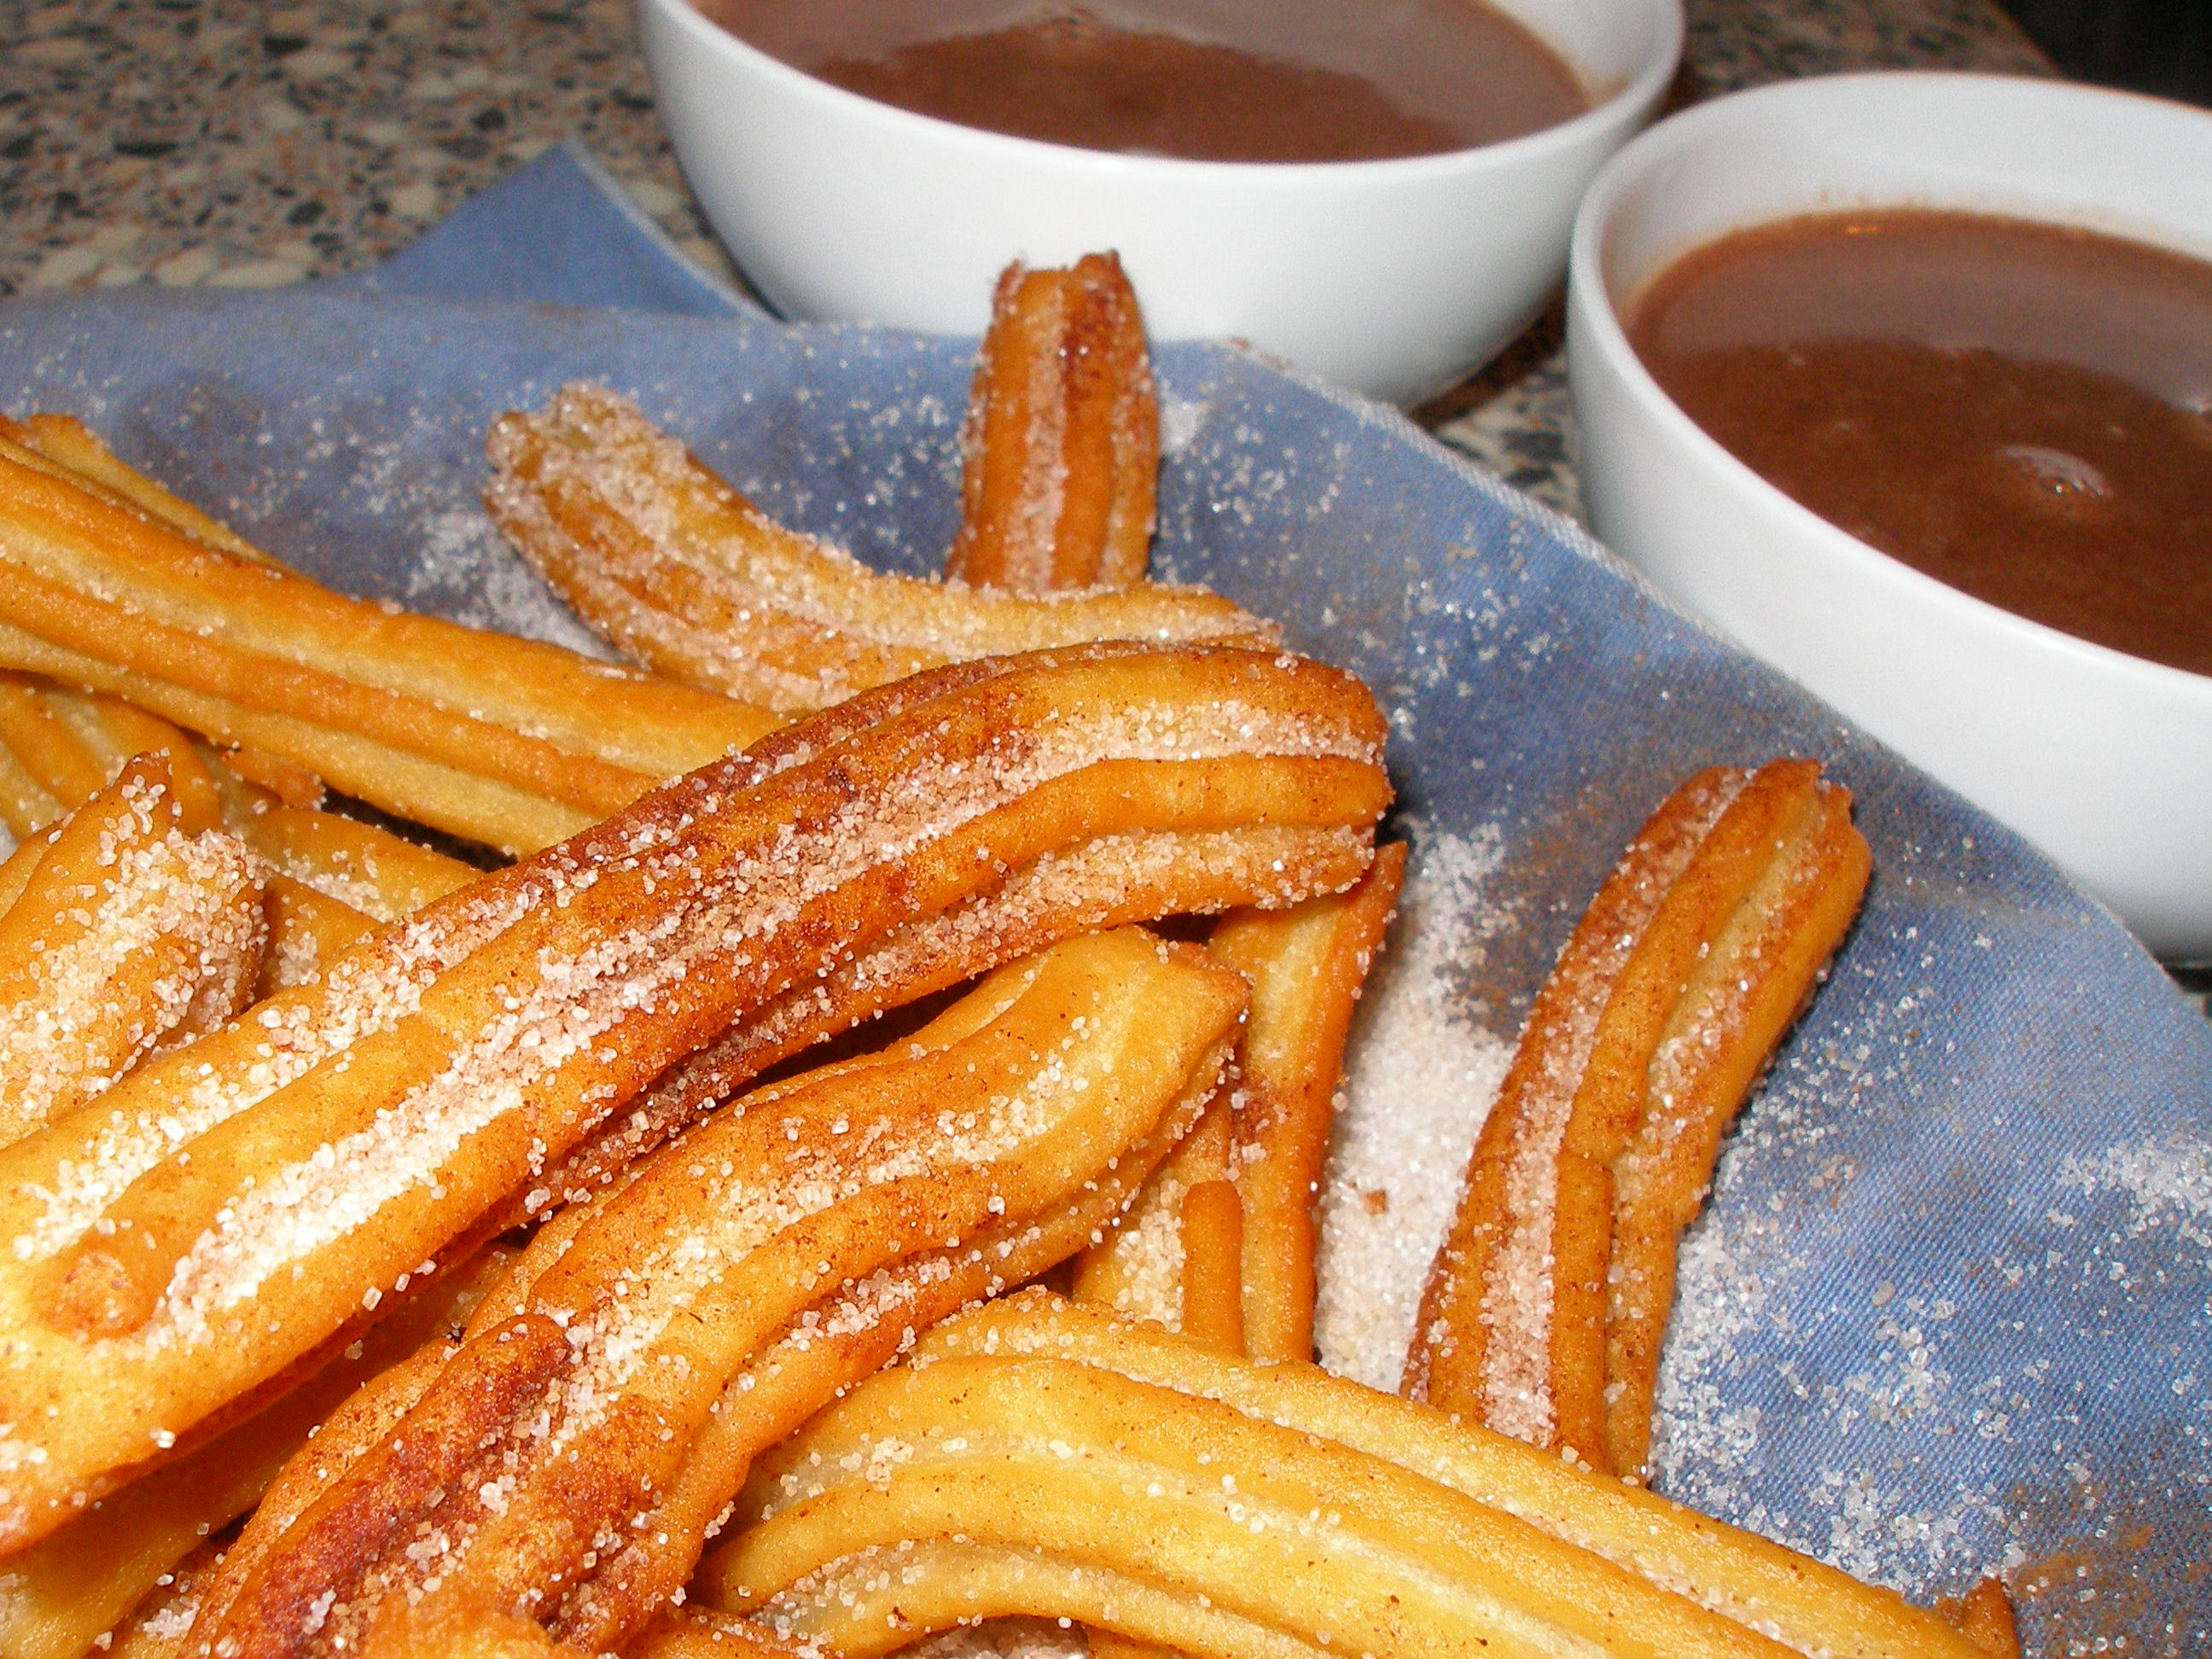 Churros up